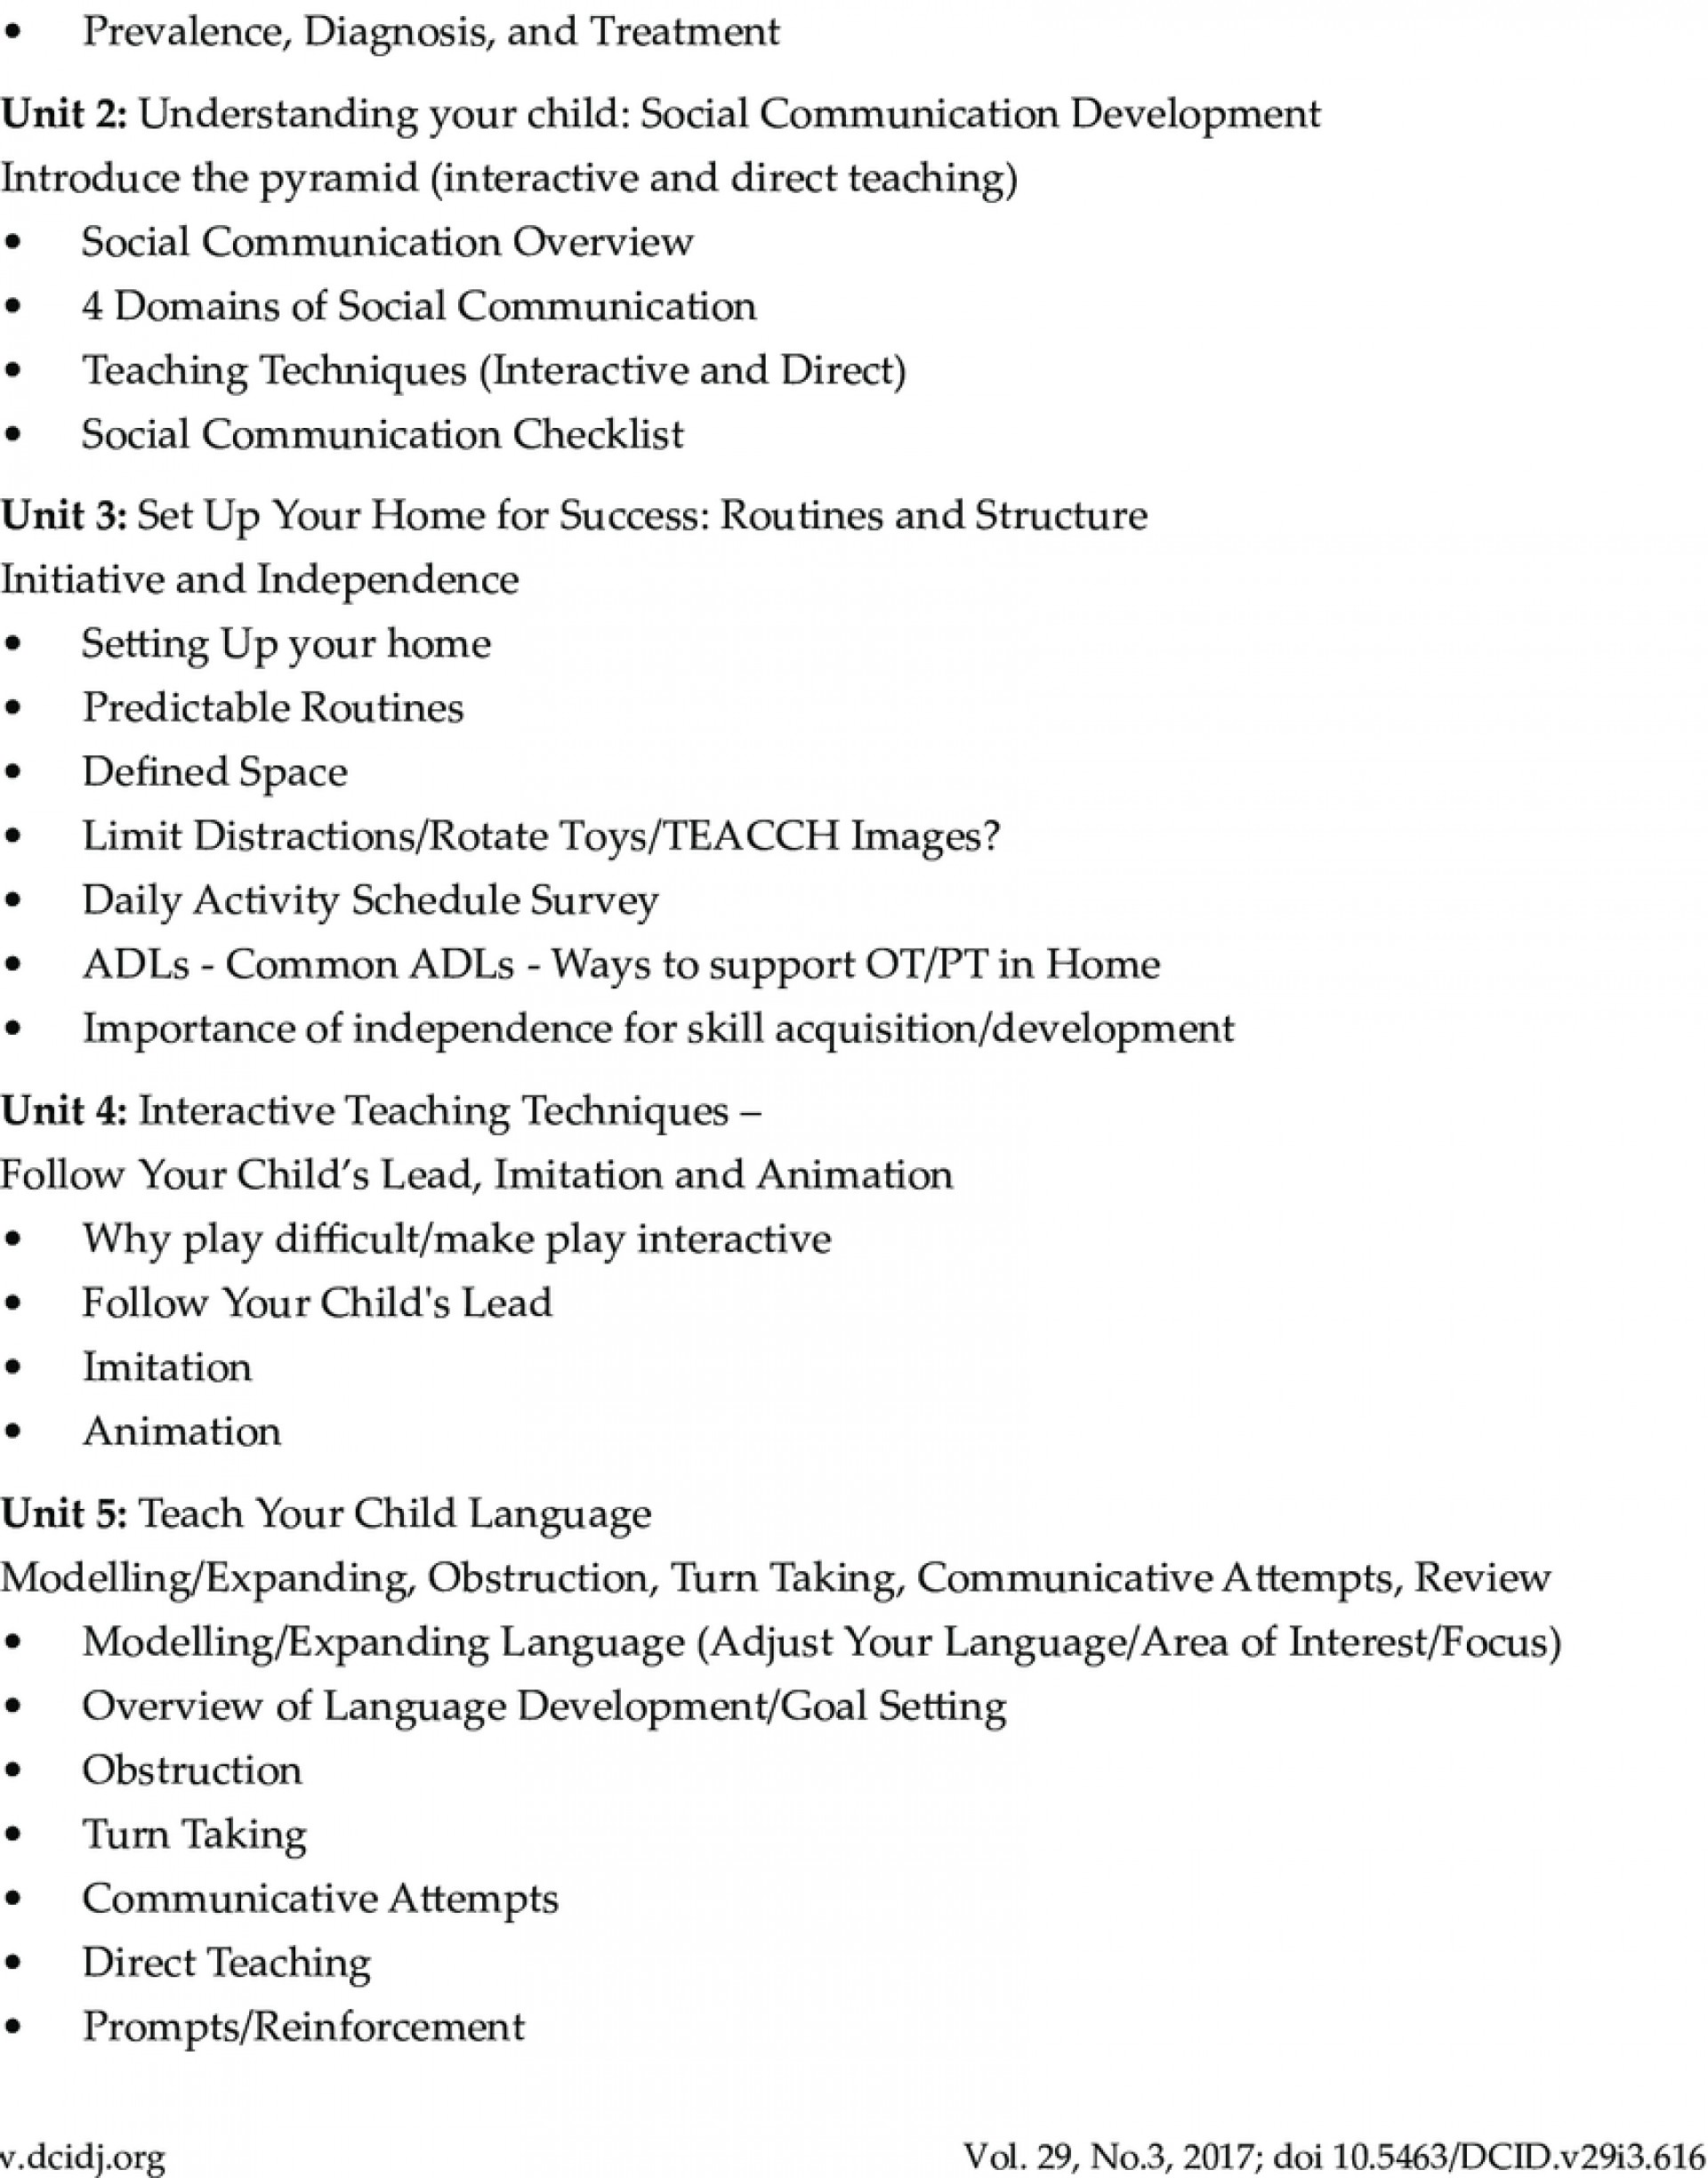 015 Autism Research Paper Outline Of The Bpep Programme Curriculum Unit Introduction To Surprising For 1920